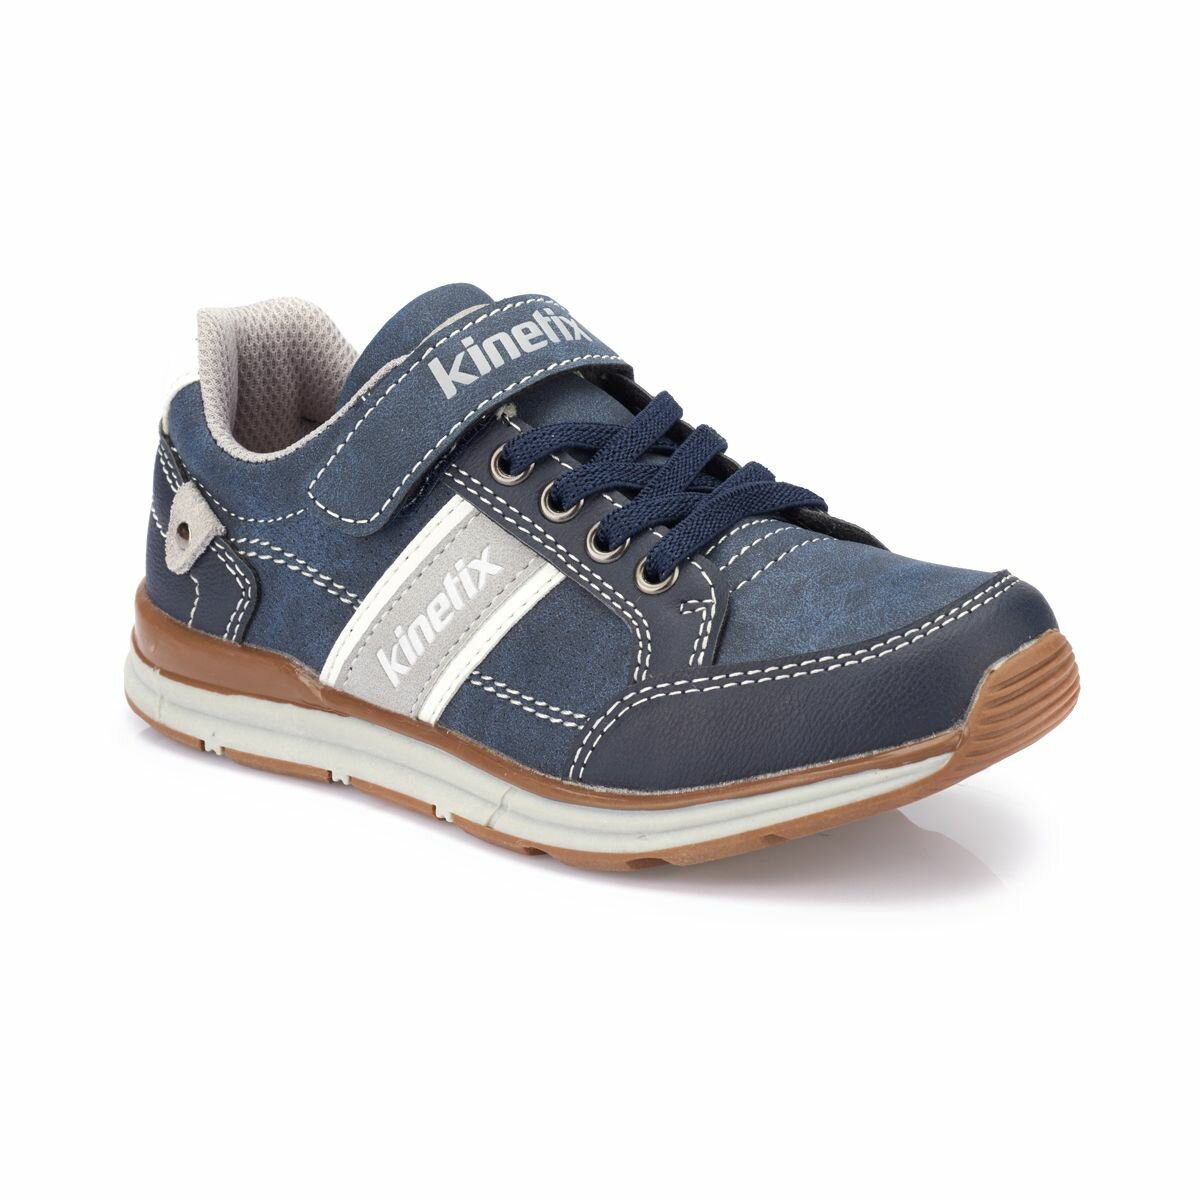 FLO ALFONI Navy Blue Male Child Sneaker Shoes KINETIX